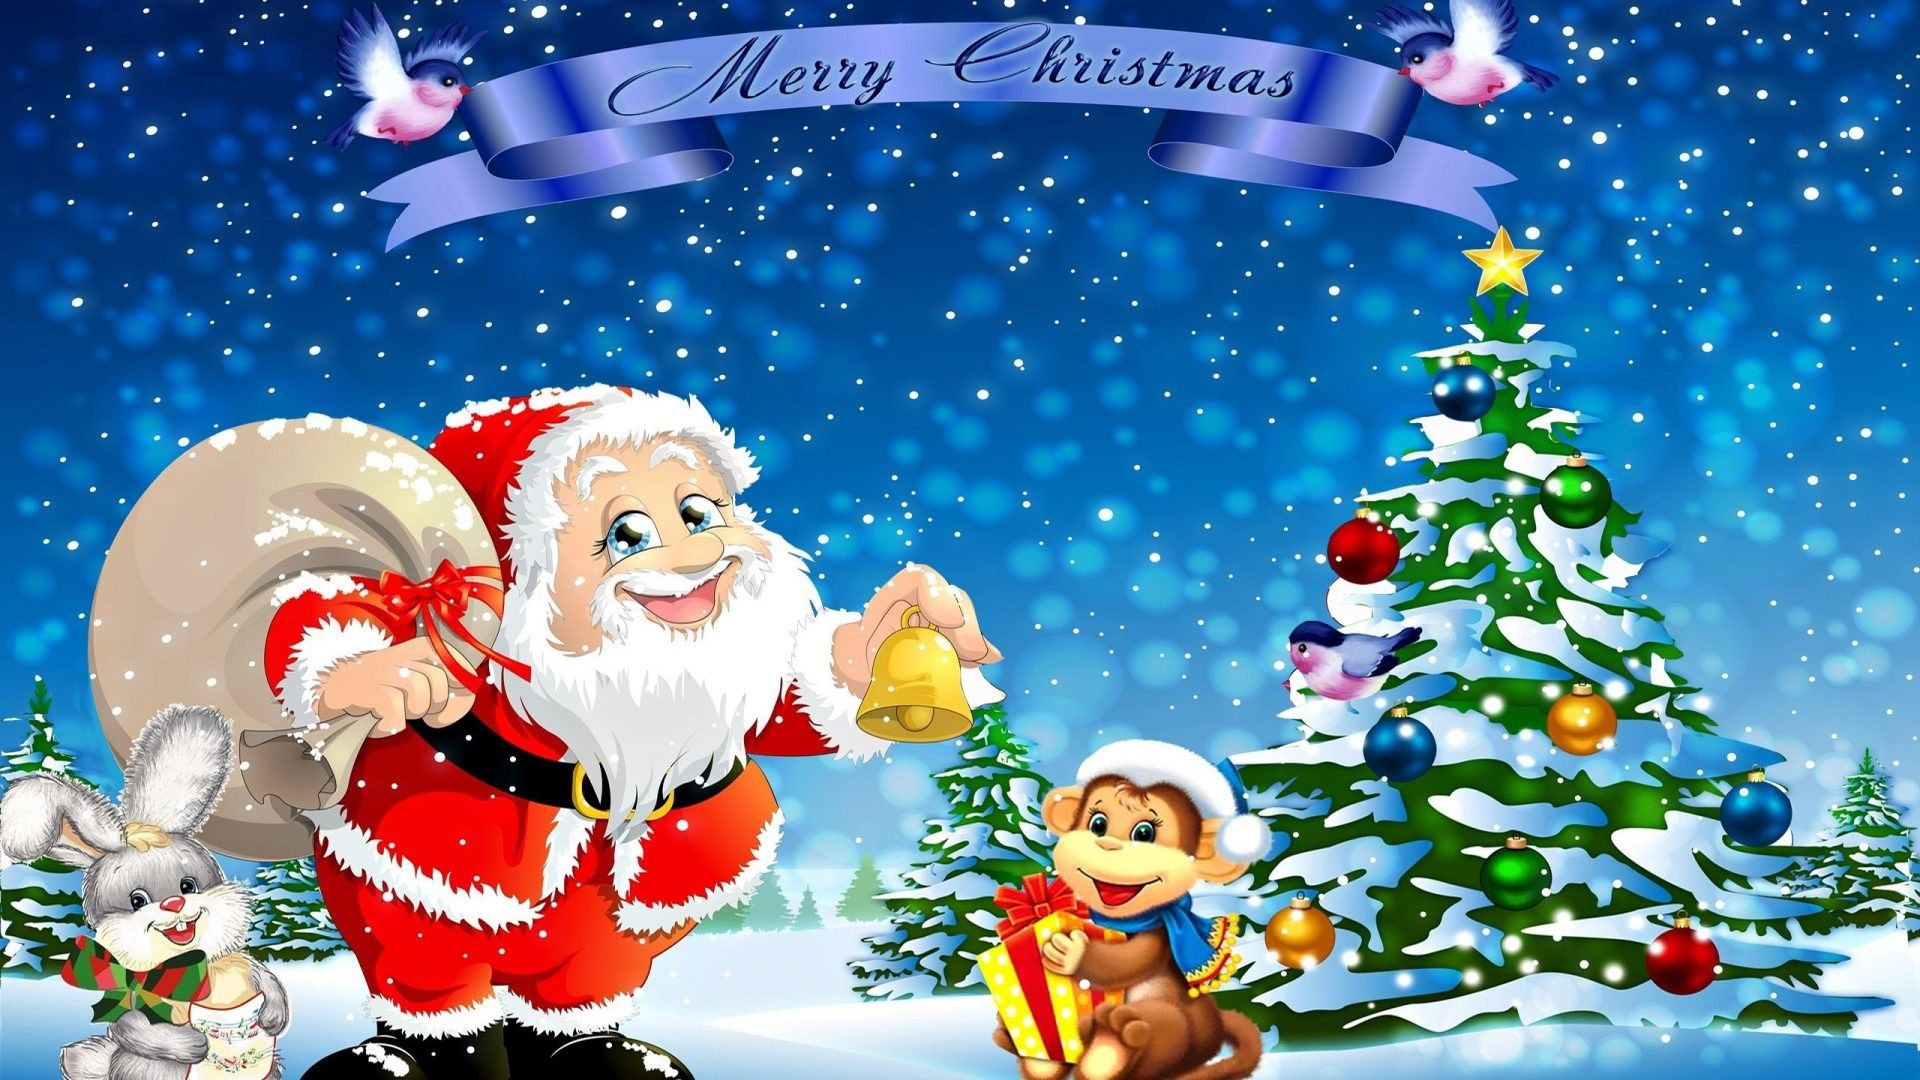 Santa Claus Christmas Wallpapers Top Free Santa Claus